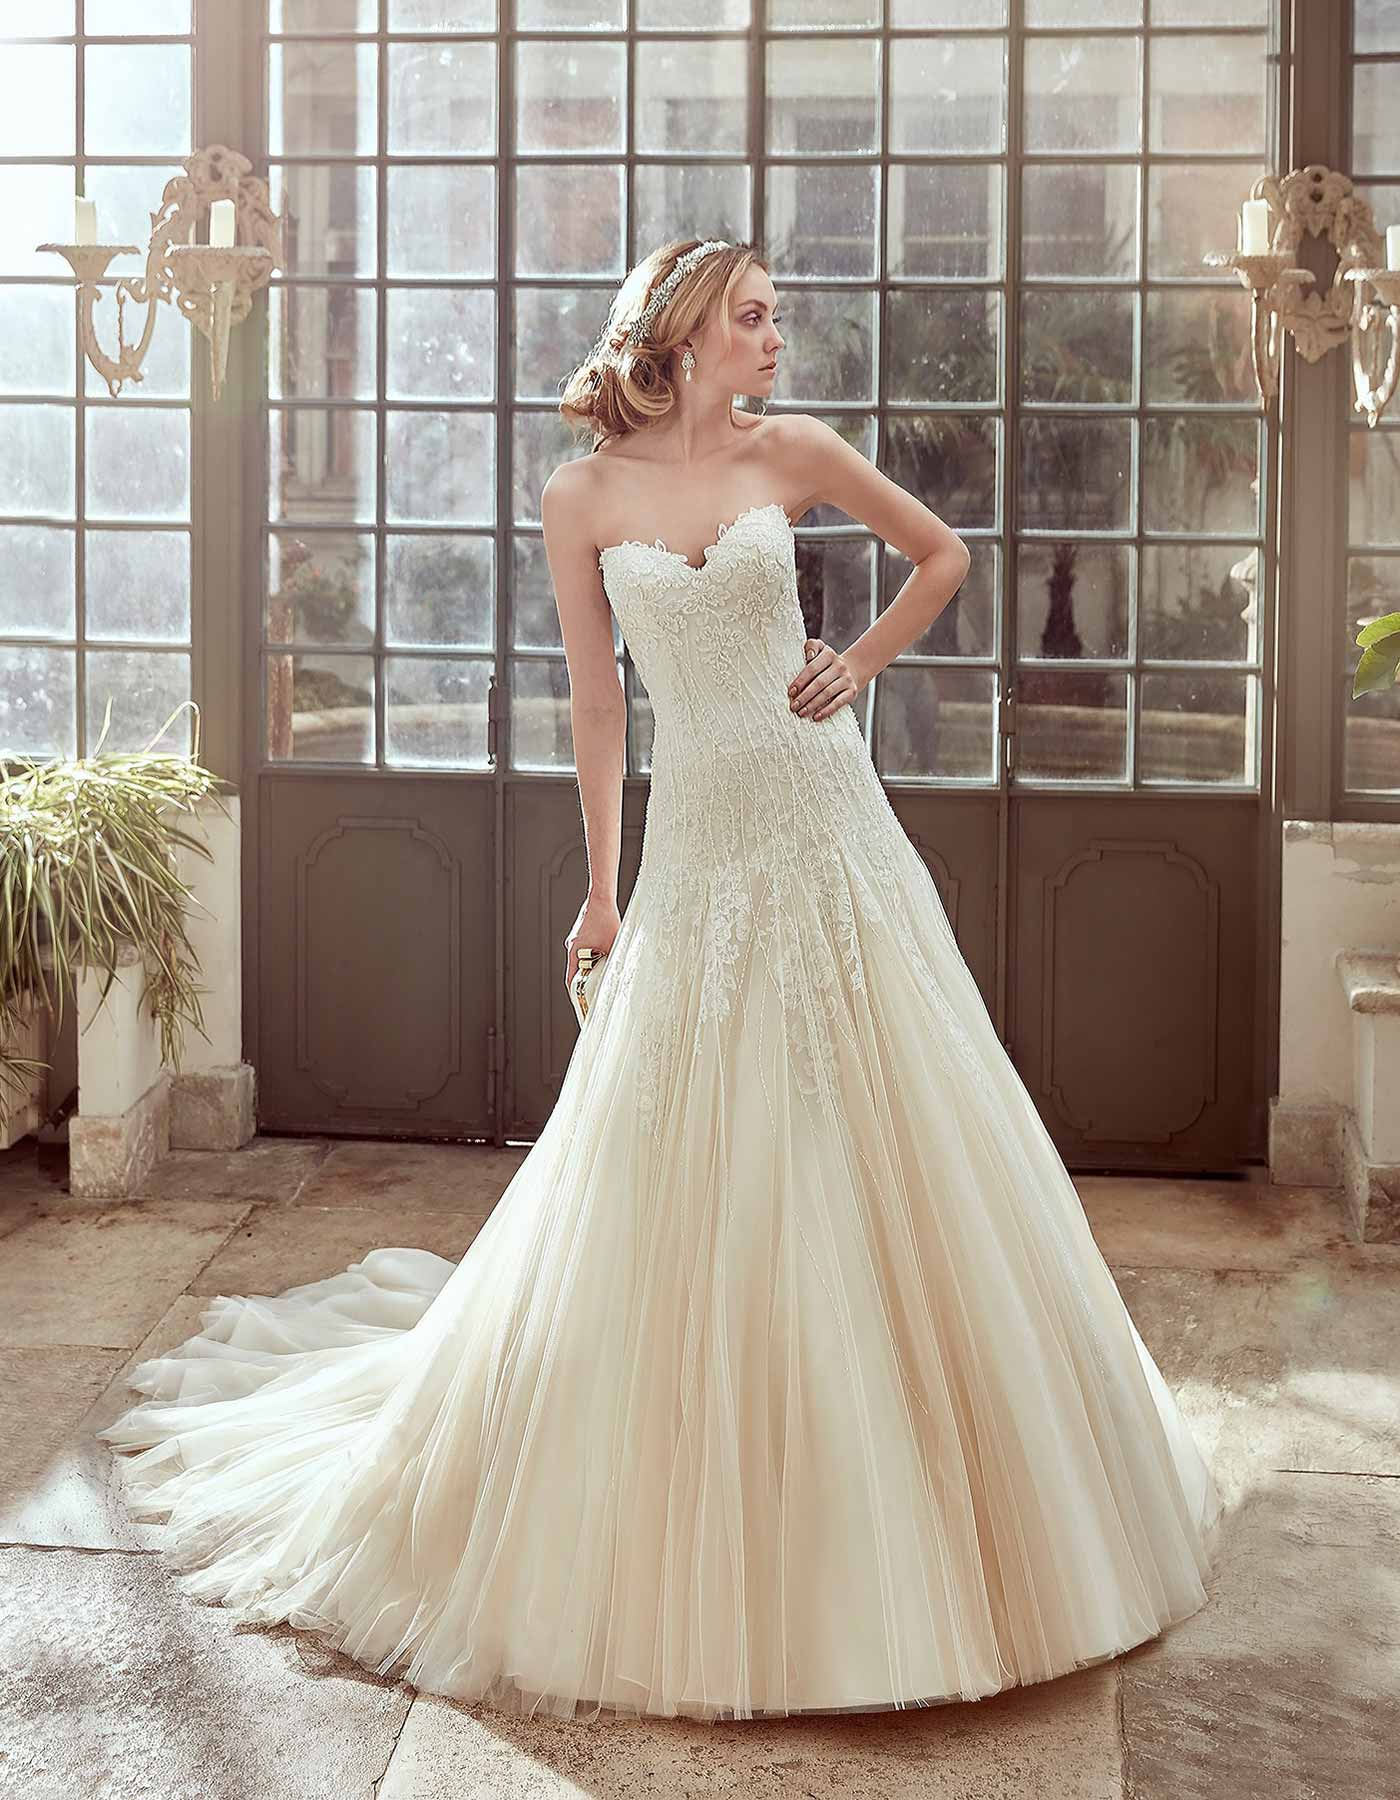 17017 By Nicole Spose Soft Floaty Ball Gown With